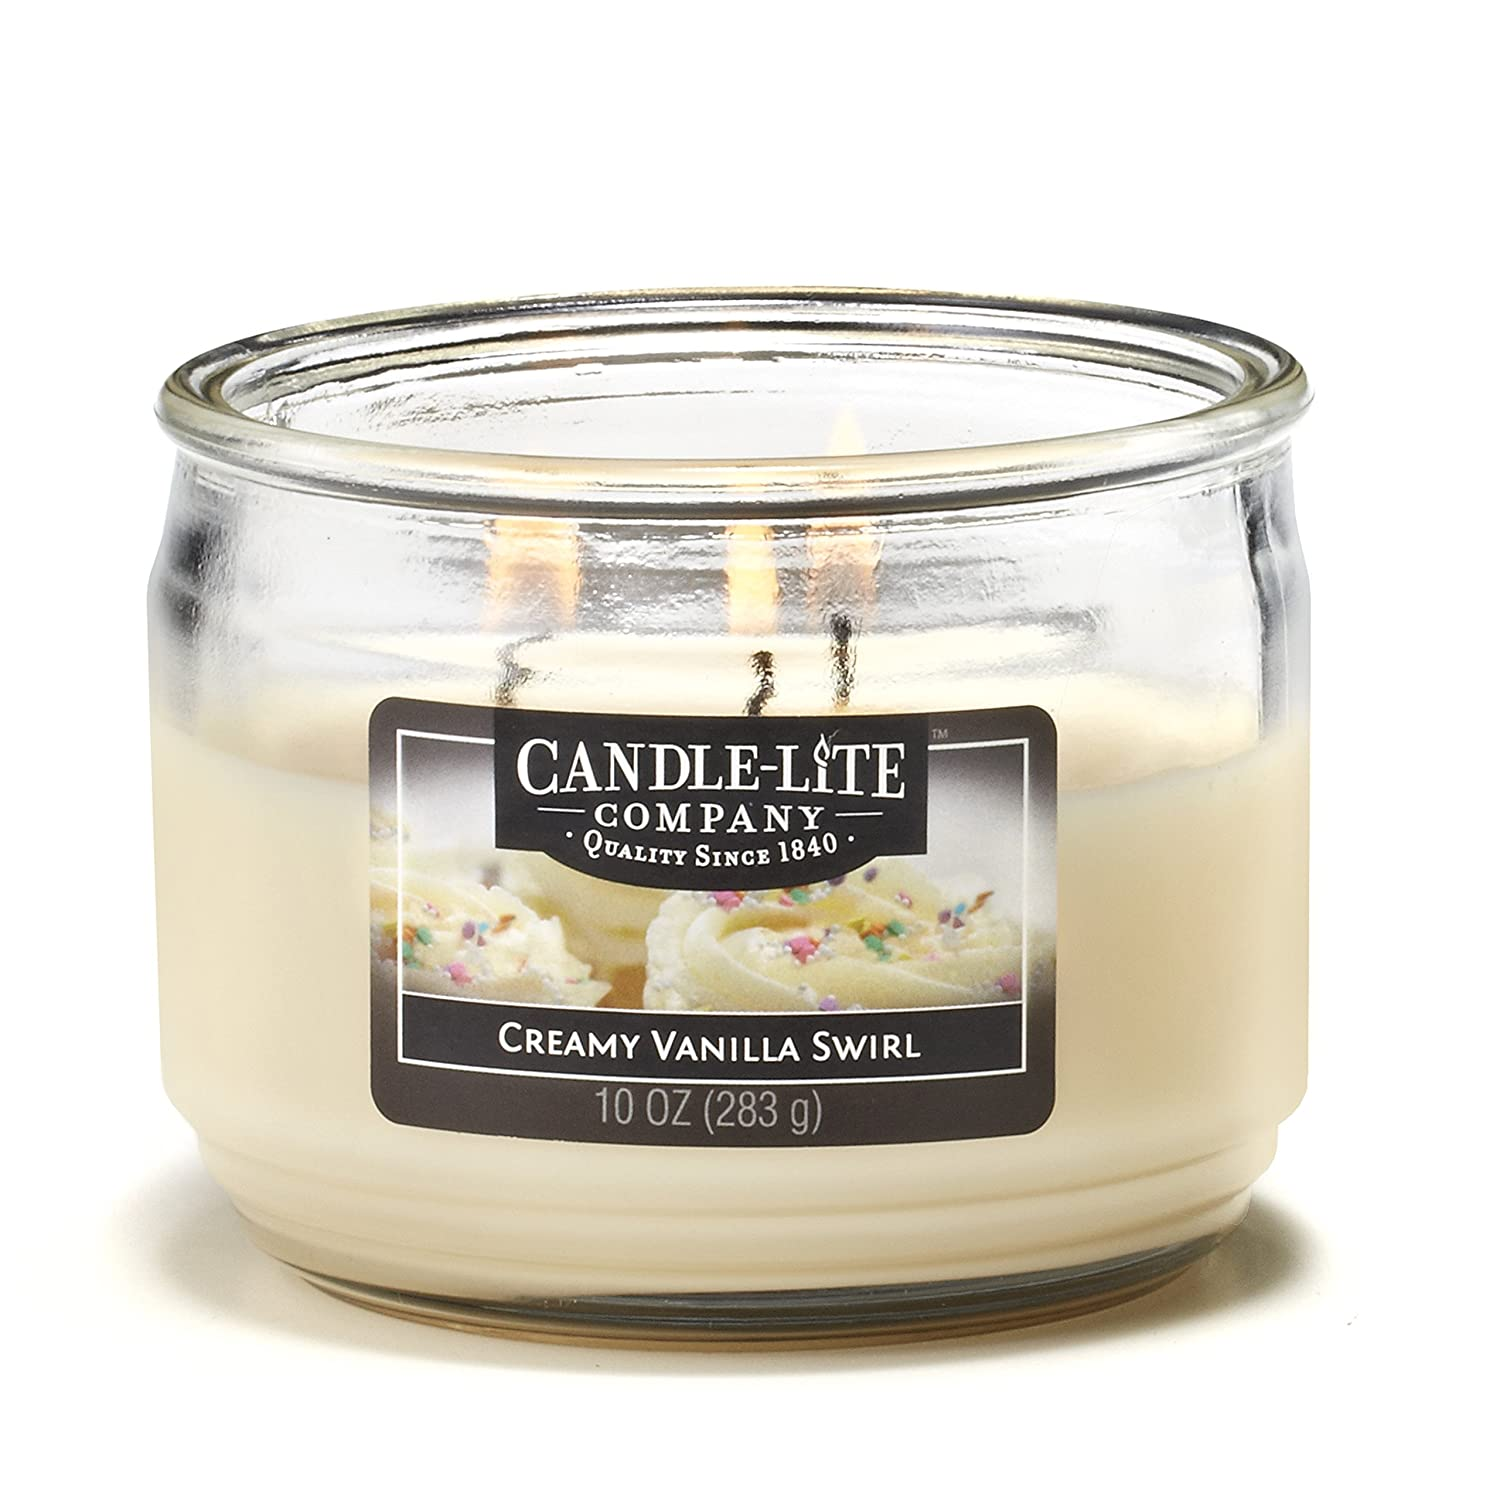 Candlelite Essentials 3 Wick 10-Ounce Creamy Vanilla Swirl Terrace Jar Candle Candle-Lite 1879553